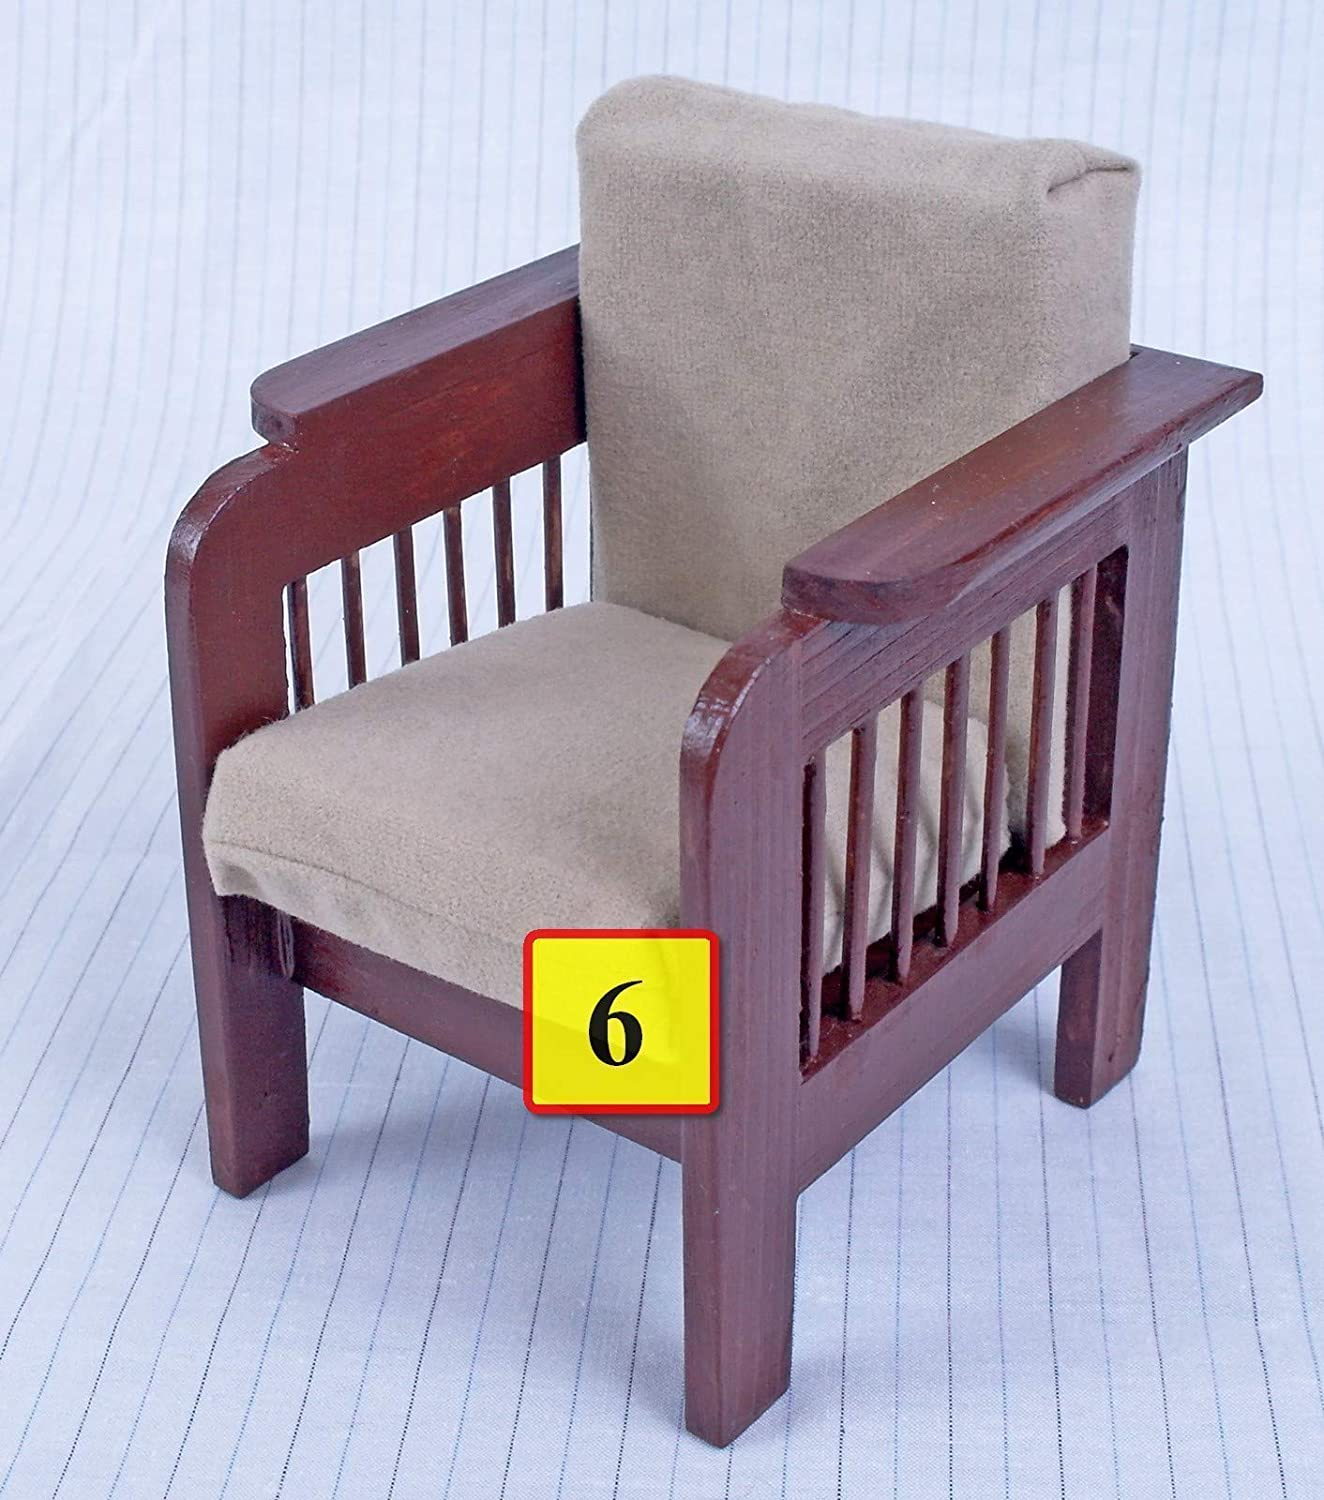 MH Blythe Furniture for Barbie dolls armchair wooden dollhouse miniature self-production kit 1:6 scale for 12 inch dolls Barbie yosd role-playing games girls gift